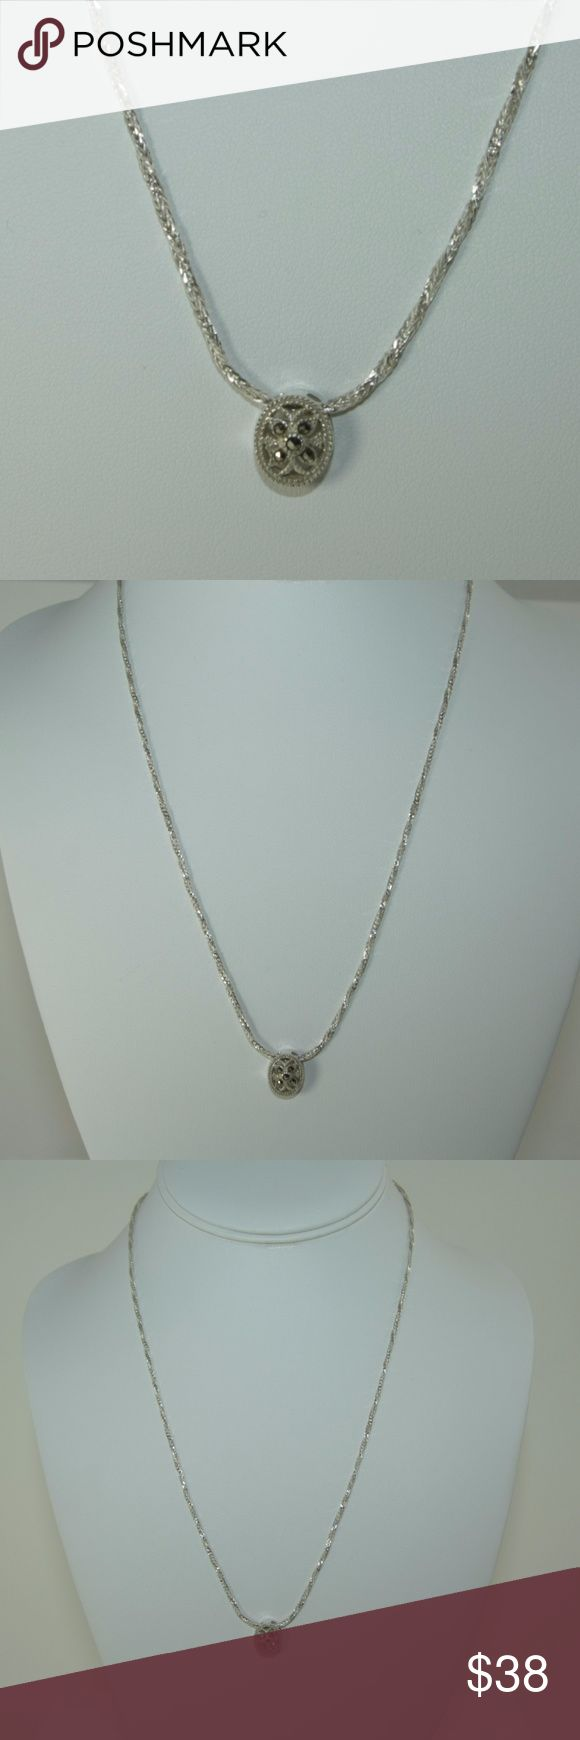 Epic Silver Necklace